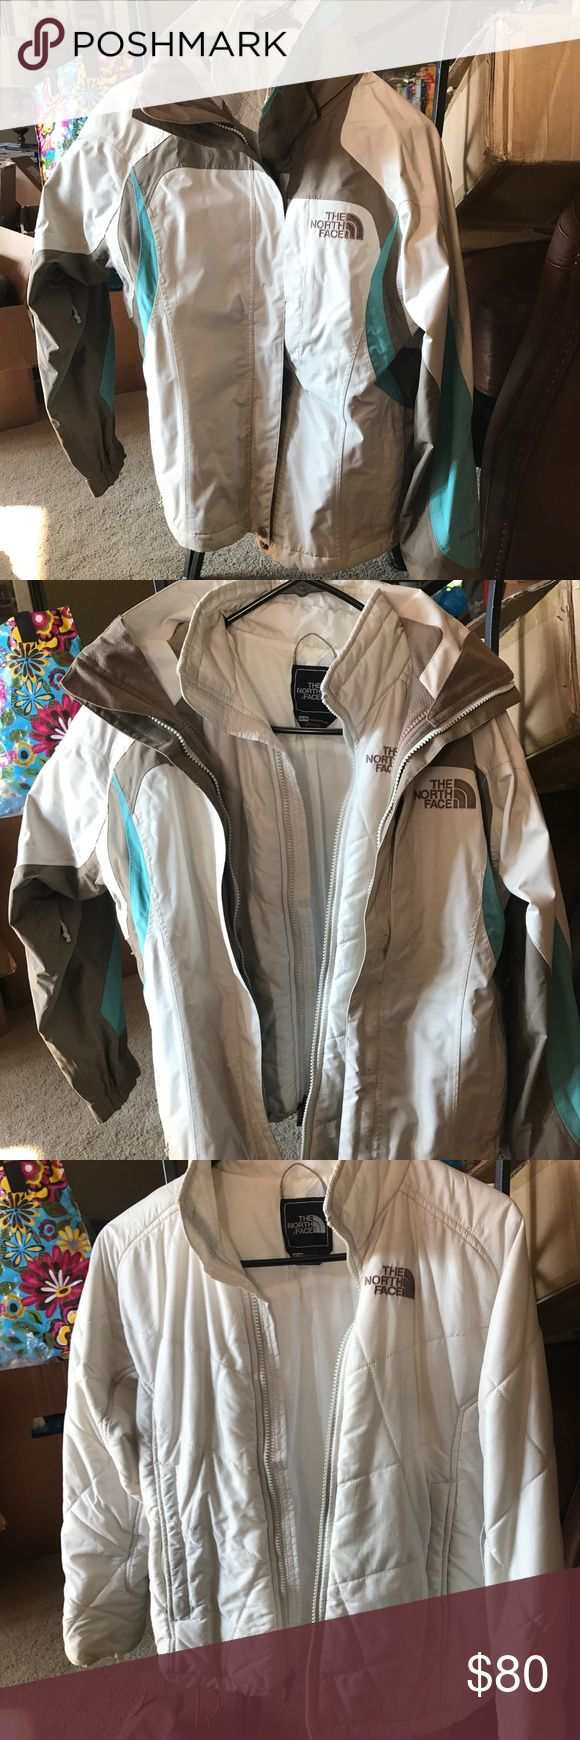 North face winter jacket North face double jacket, it's 2 jackets in one! Very flexible for outdoor activities like skiing/snowboarding/sled riding! Slight discoloration on right pocket. North Face Jackets & Coats